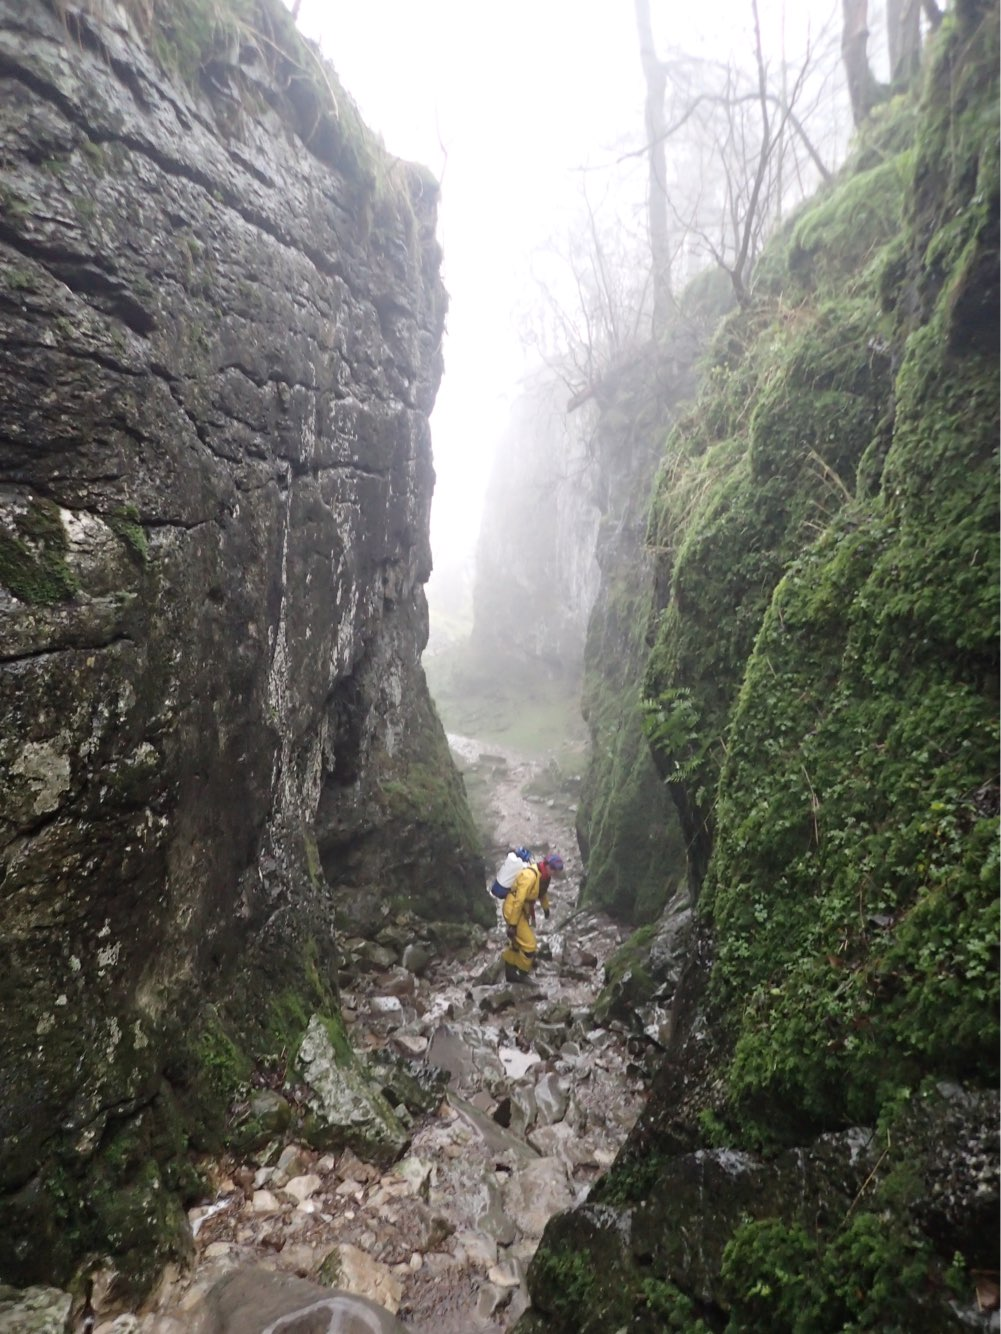 To Gaping Gill